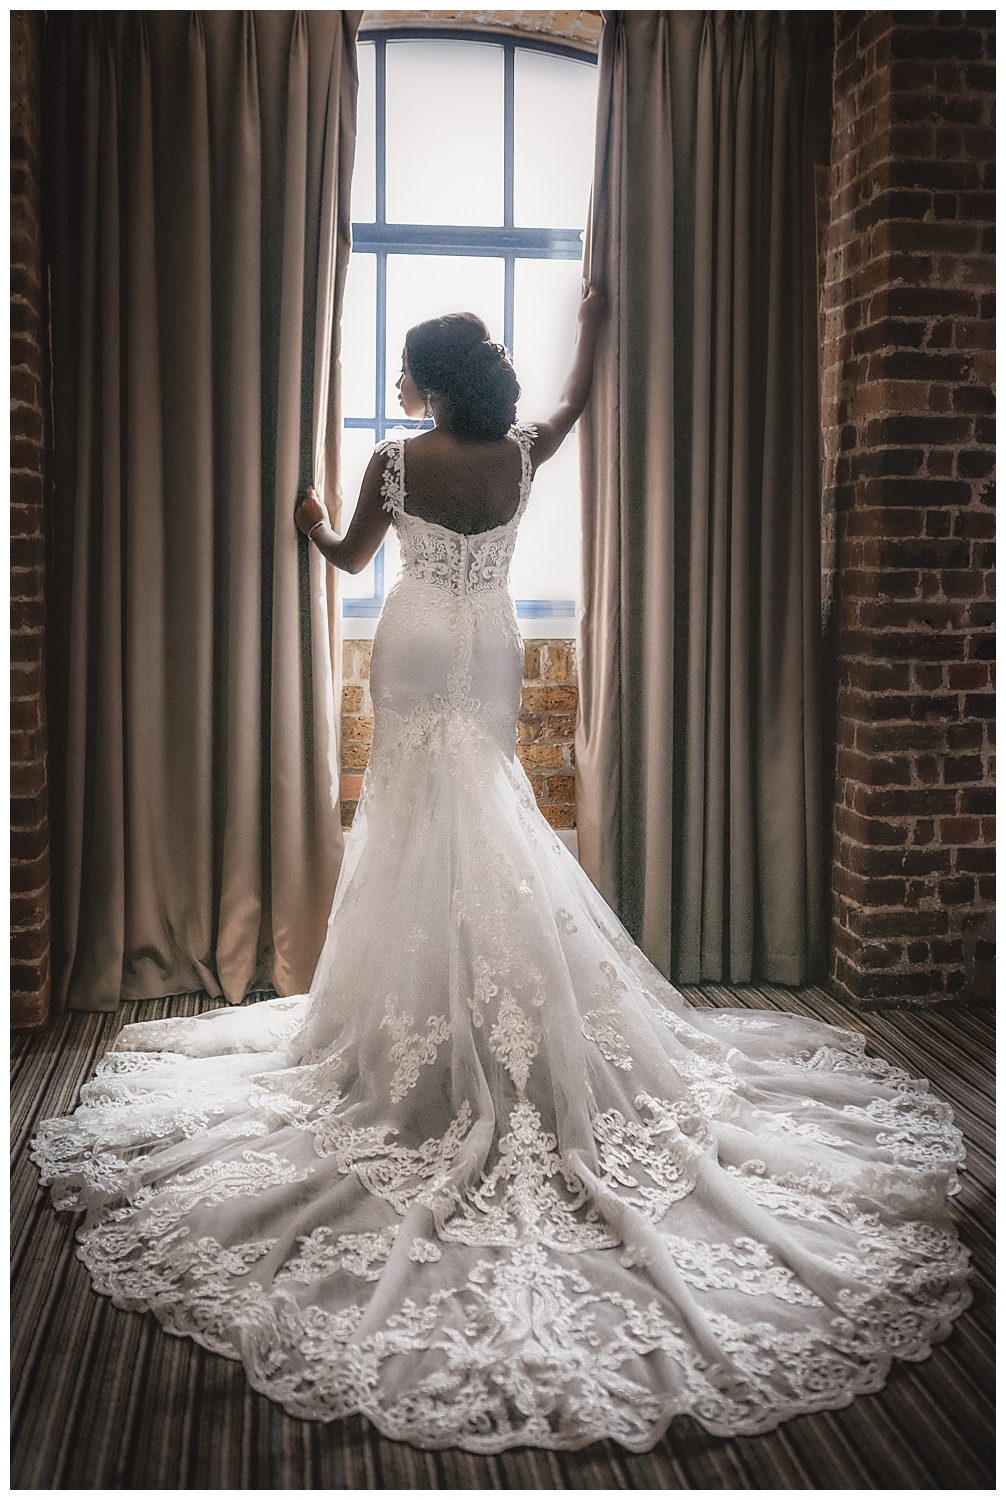 The back of the wedding dress worn by the bride